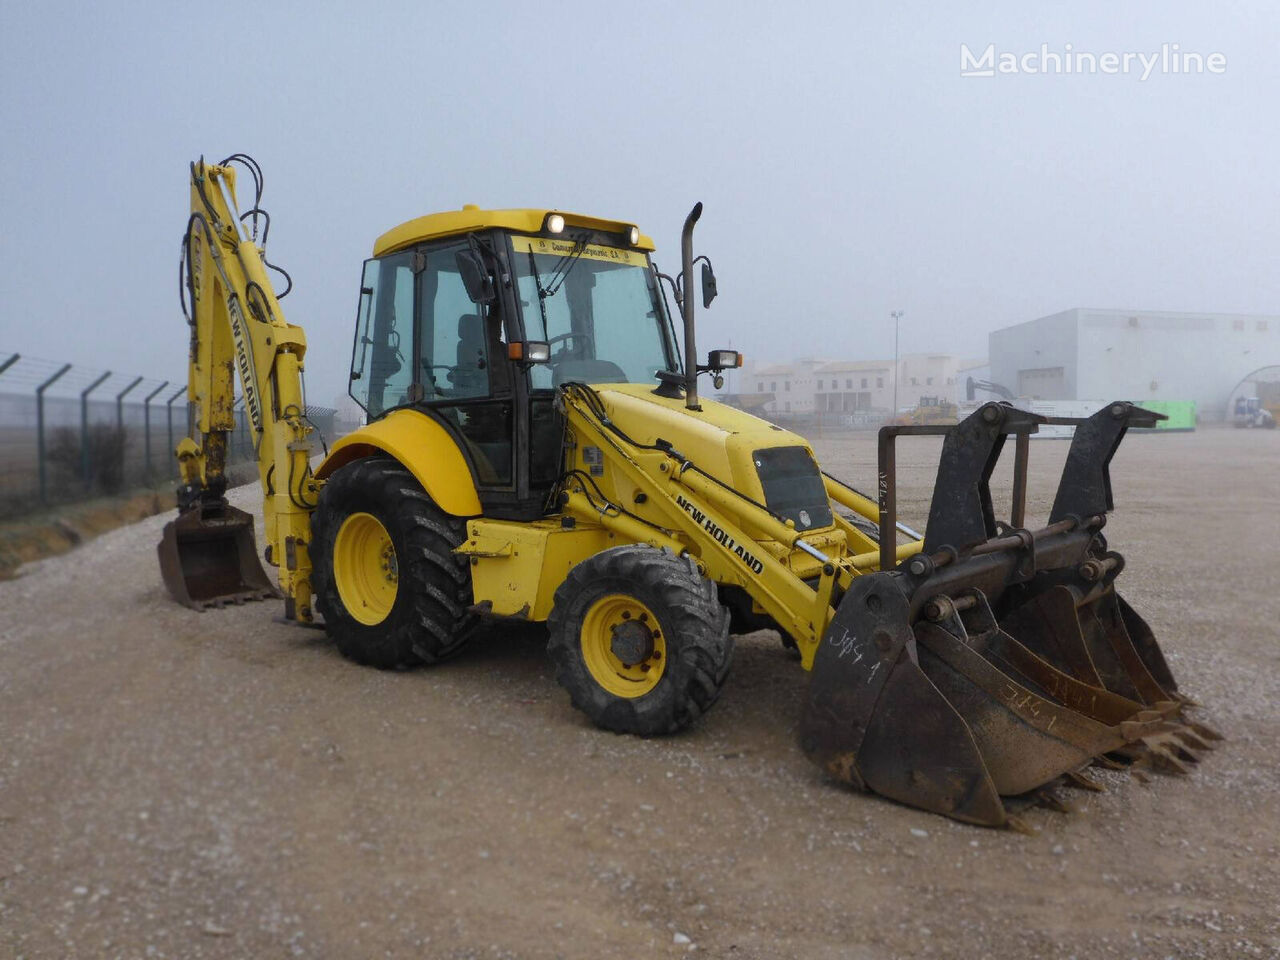 NEW HOLLAND LB110-4PT backhoe loader